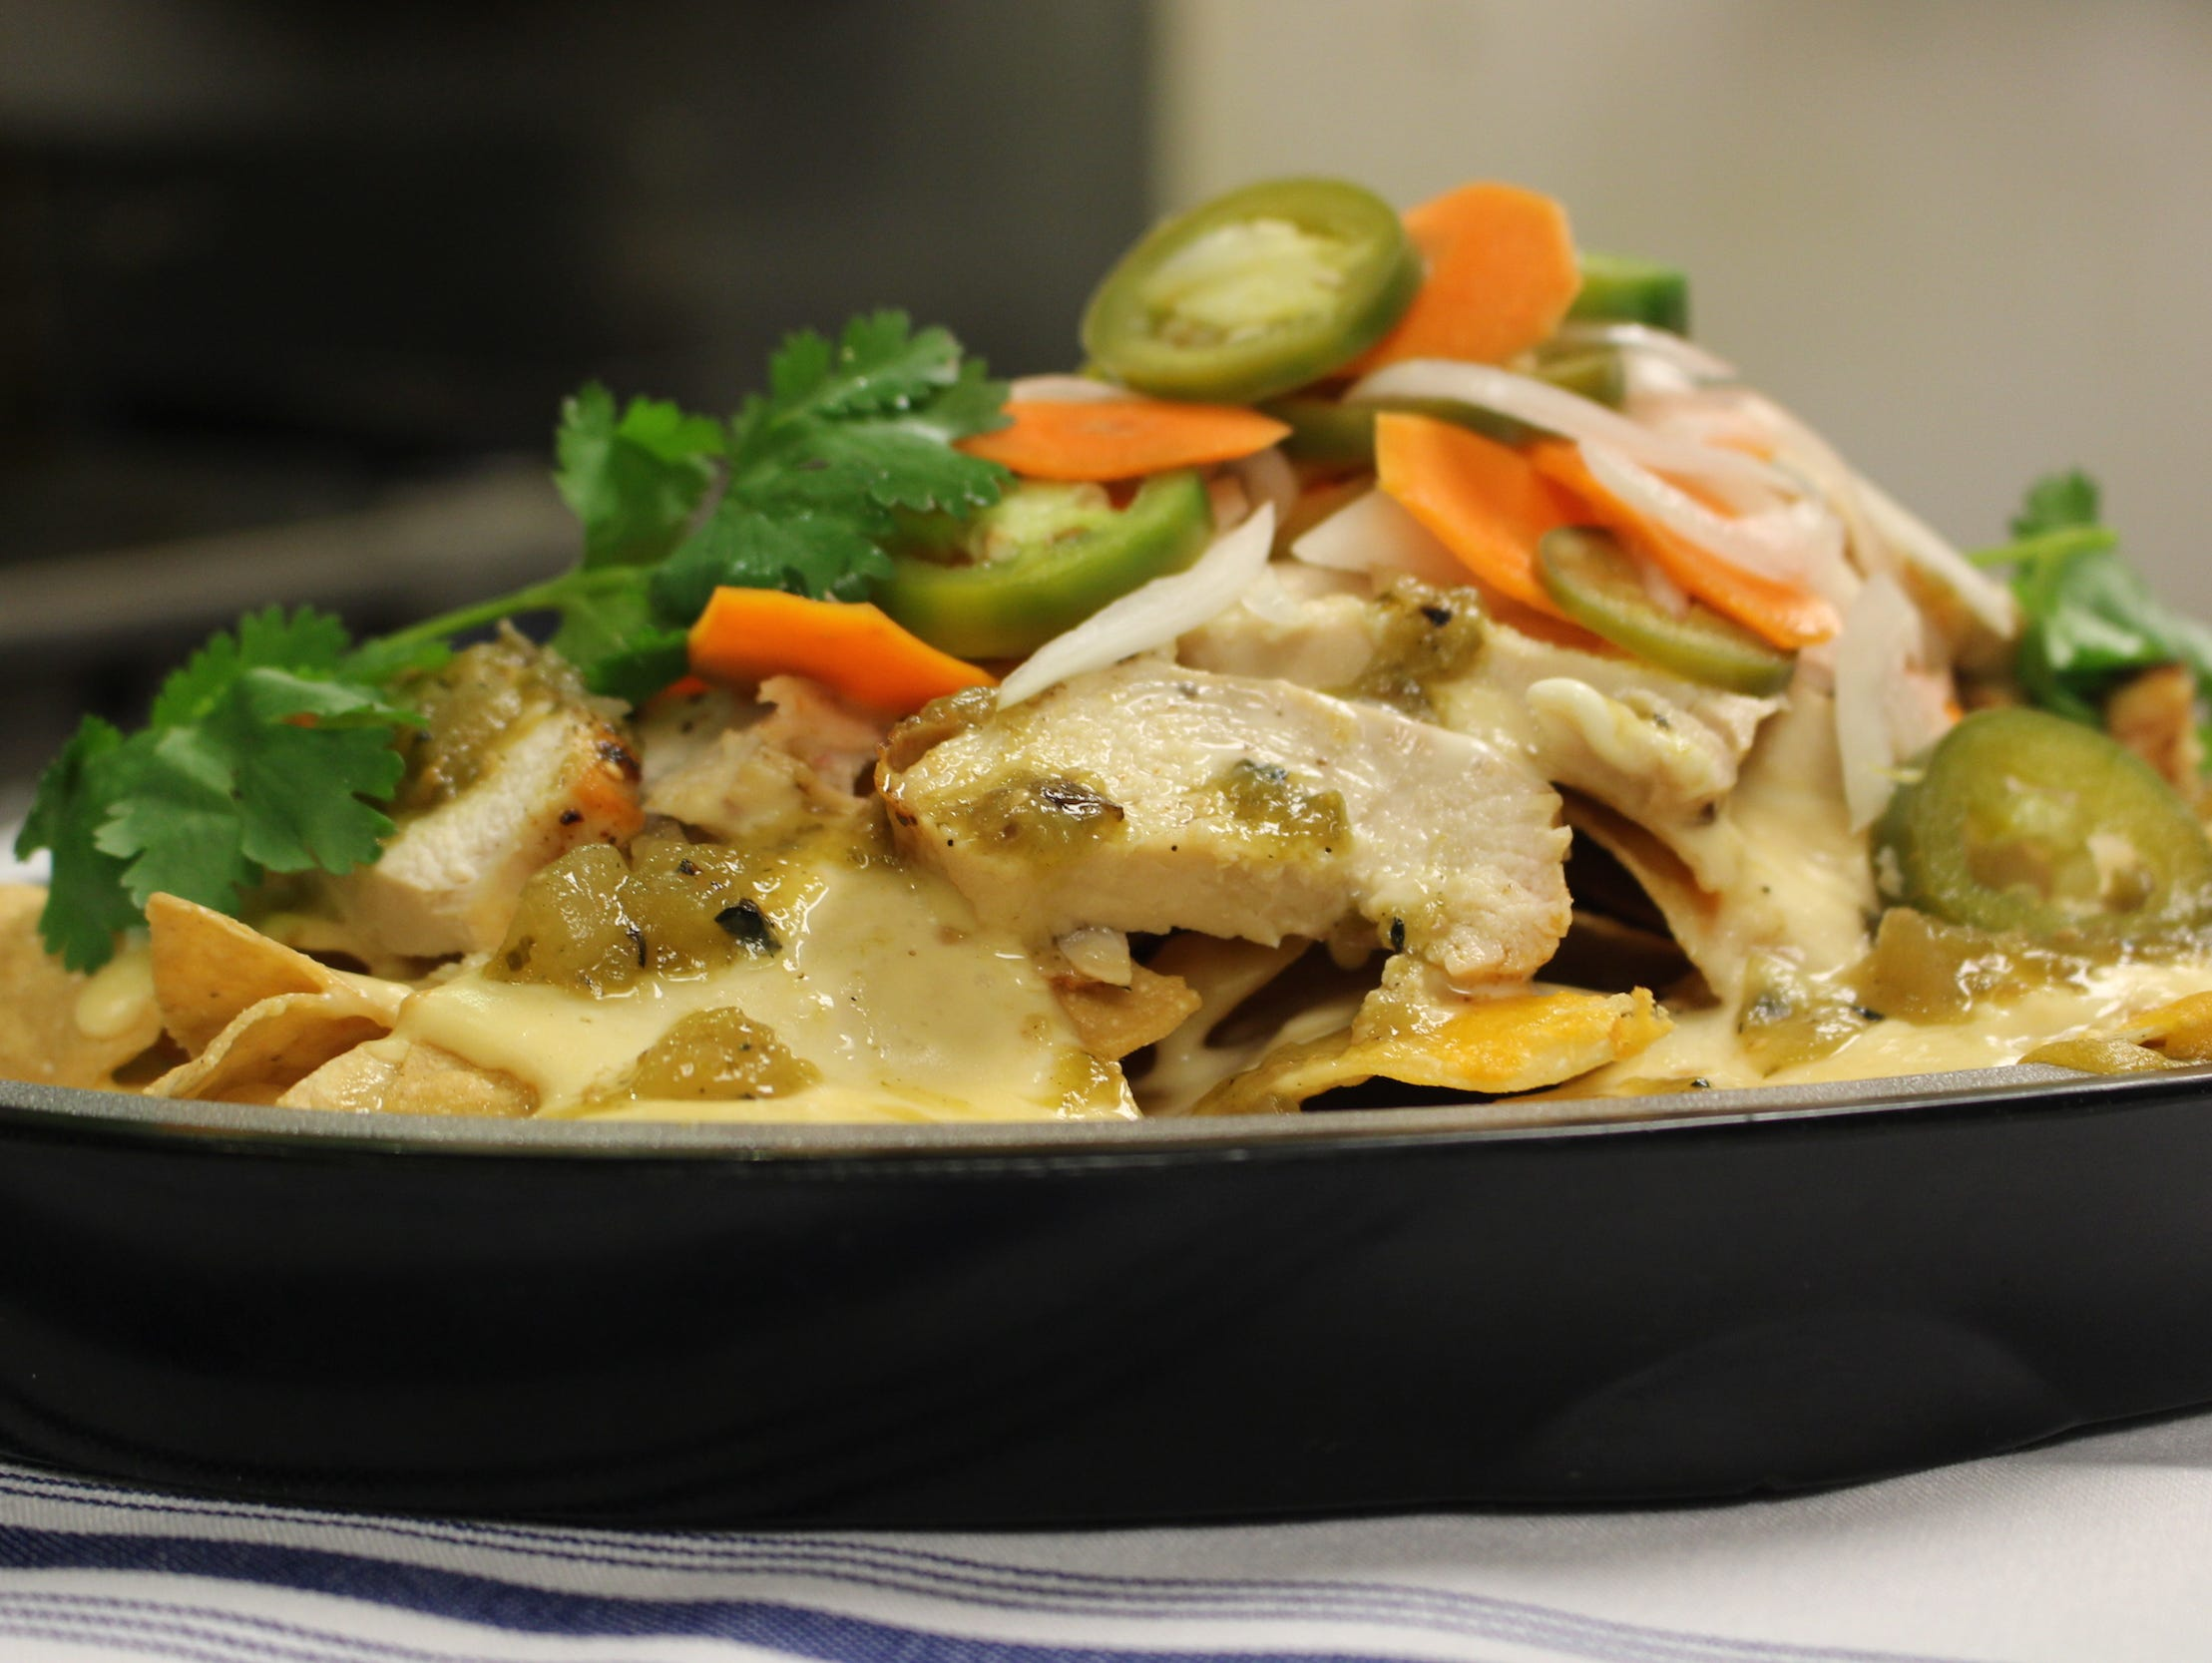 Test out this delicious nacho recipe at your next tailgate.